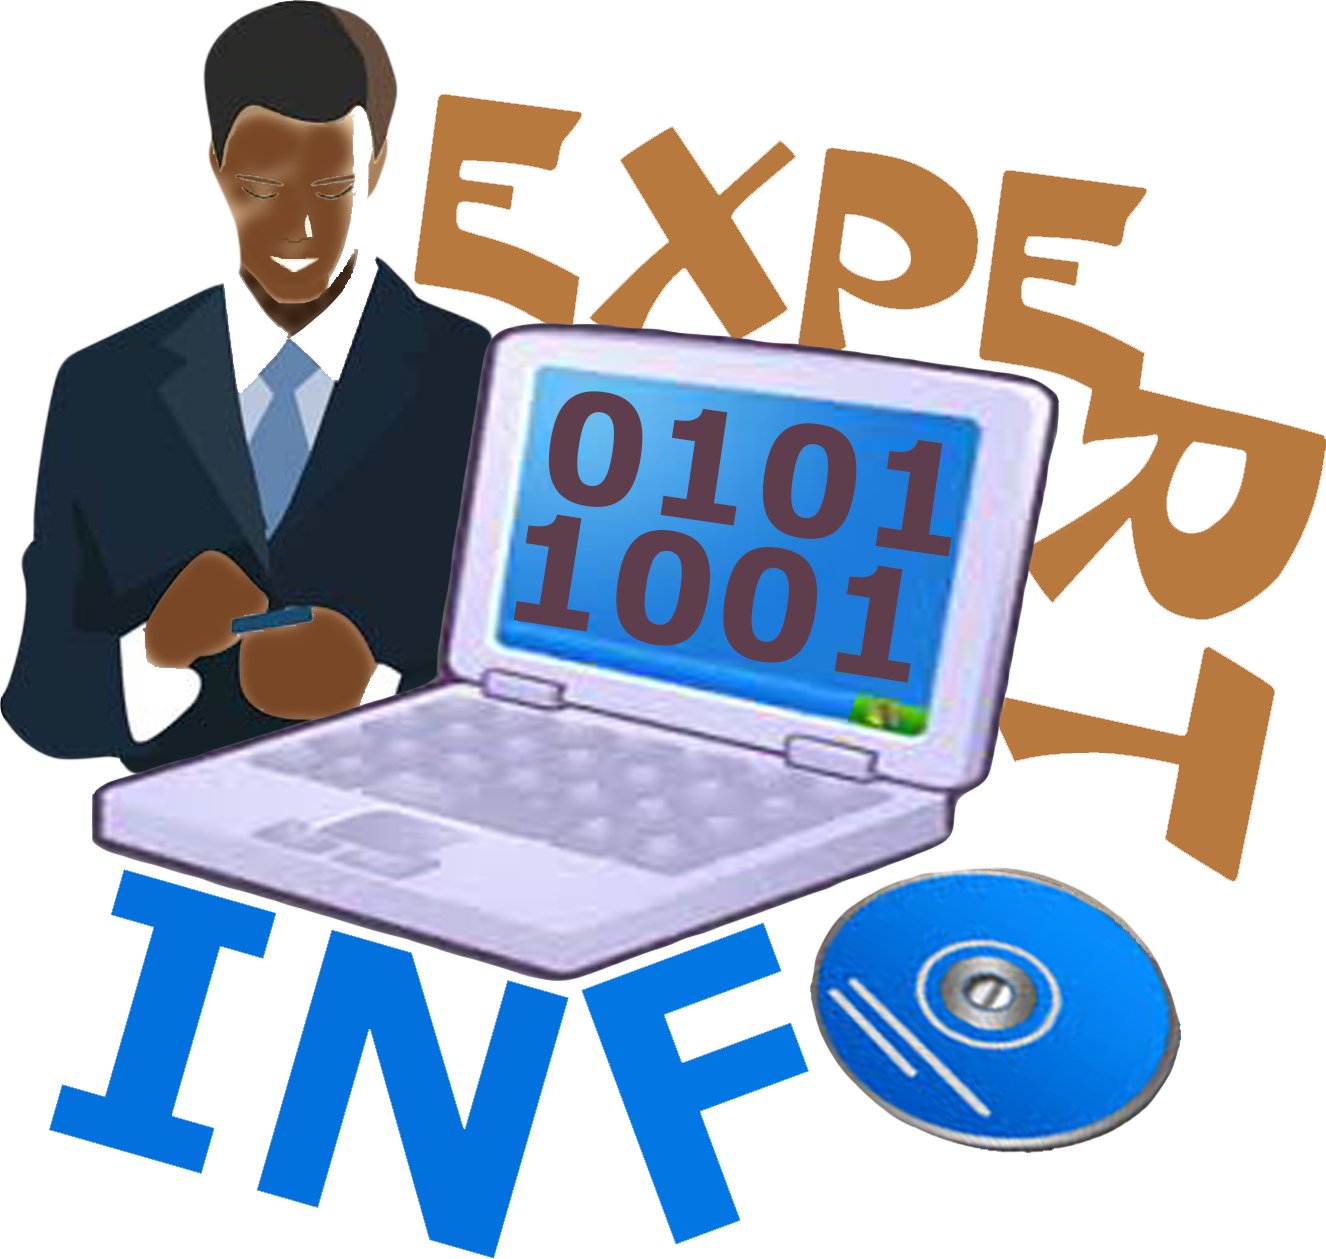 MAYEXPERINFO SARL - MAYOTTE EXPERTISE INFORMATIQUE